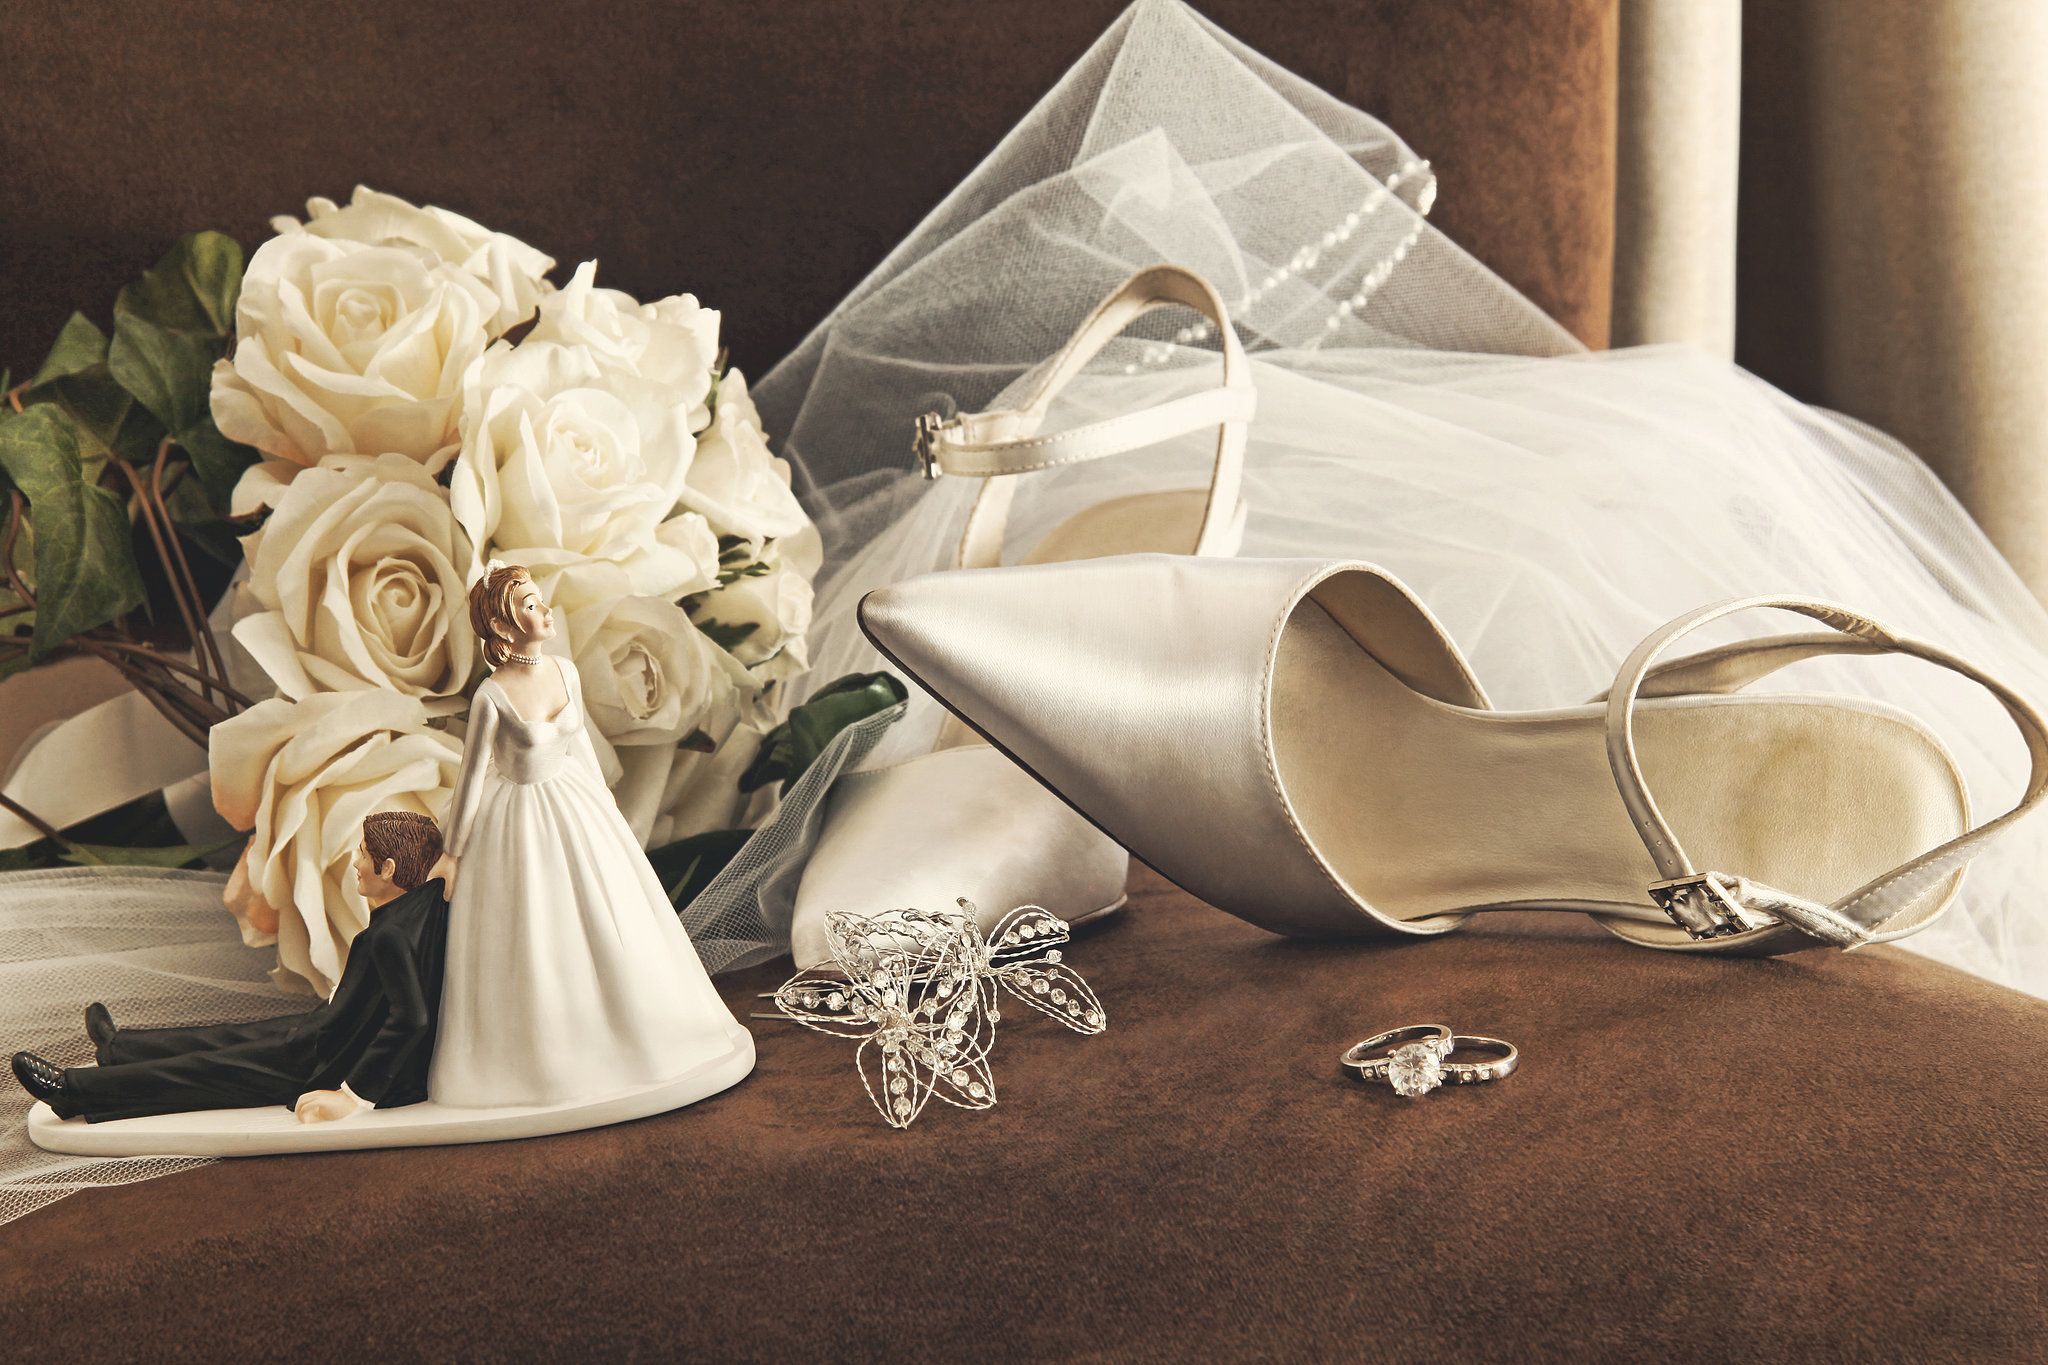 The Shoes and Accessories Beautiful wedding shoes, Satin